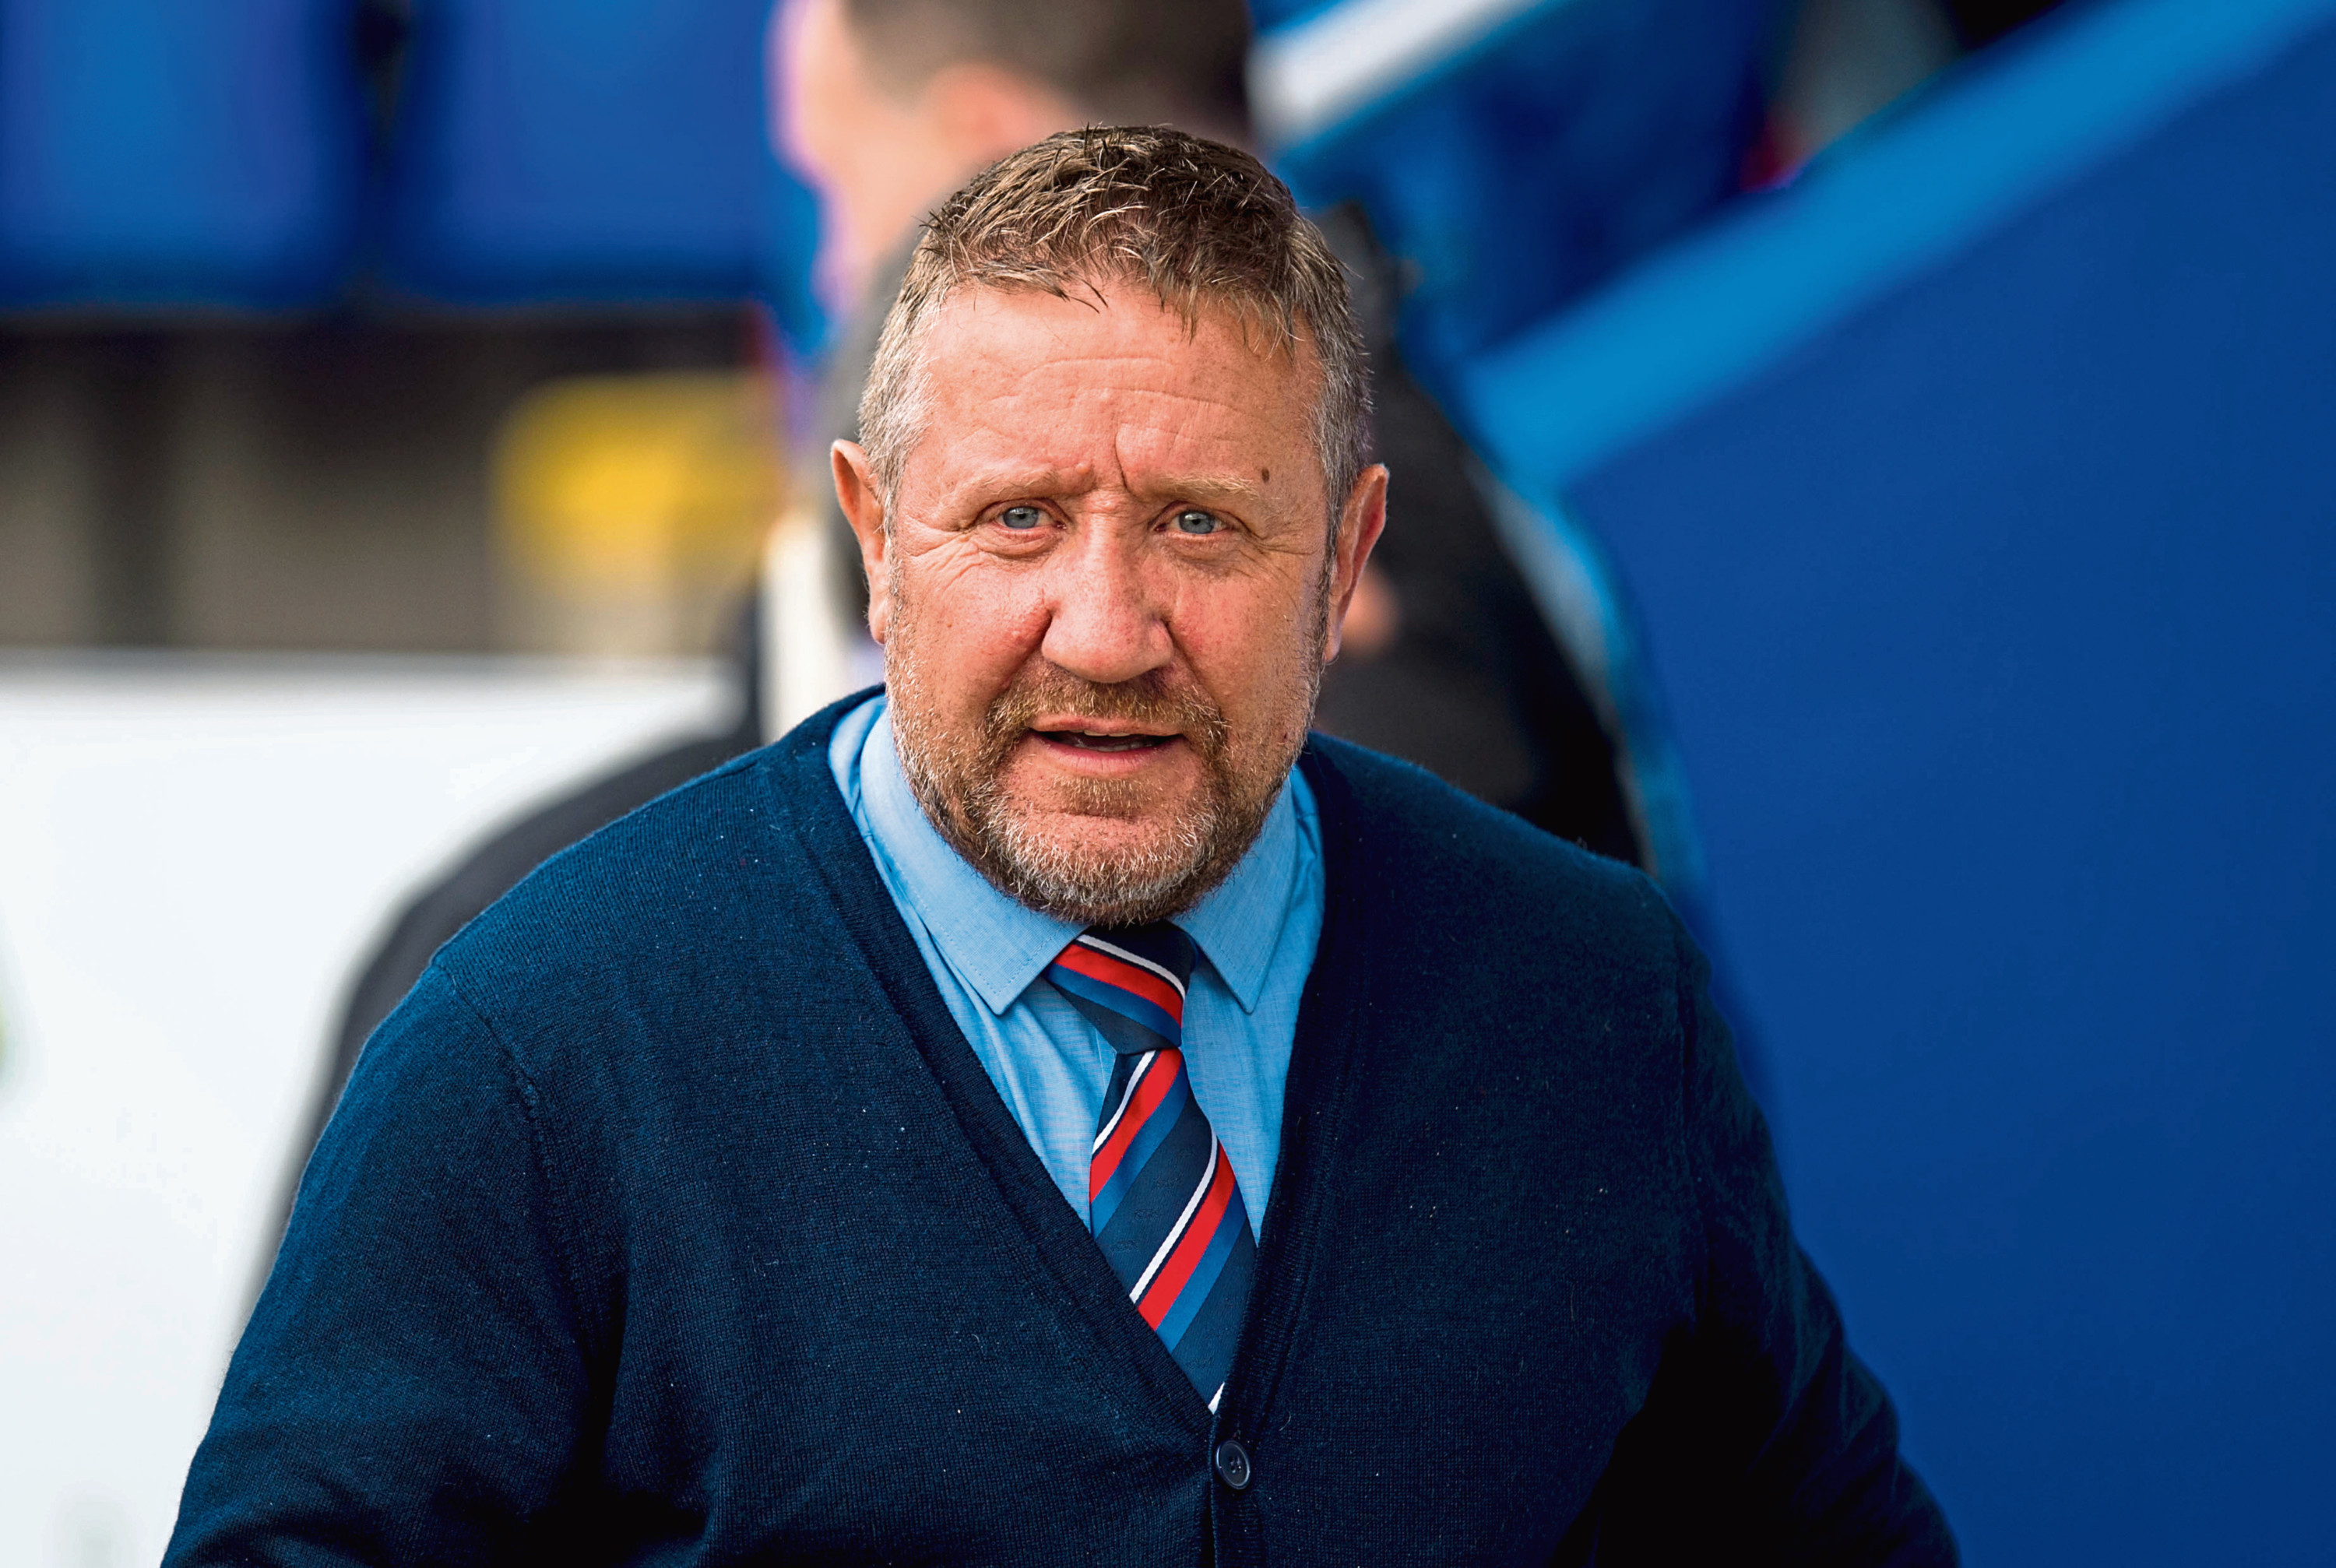 Inverness boss John Robertson is said to be interested